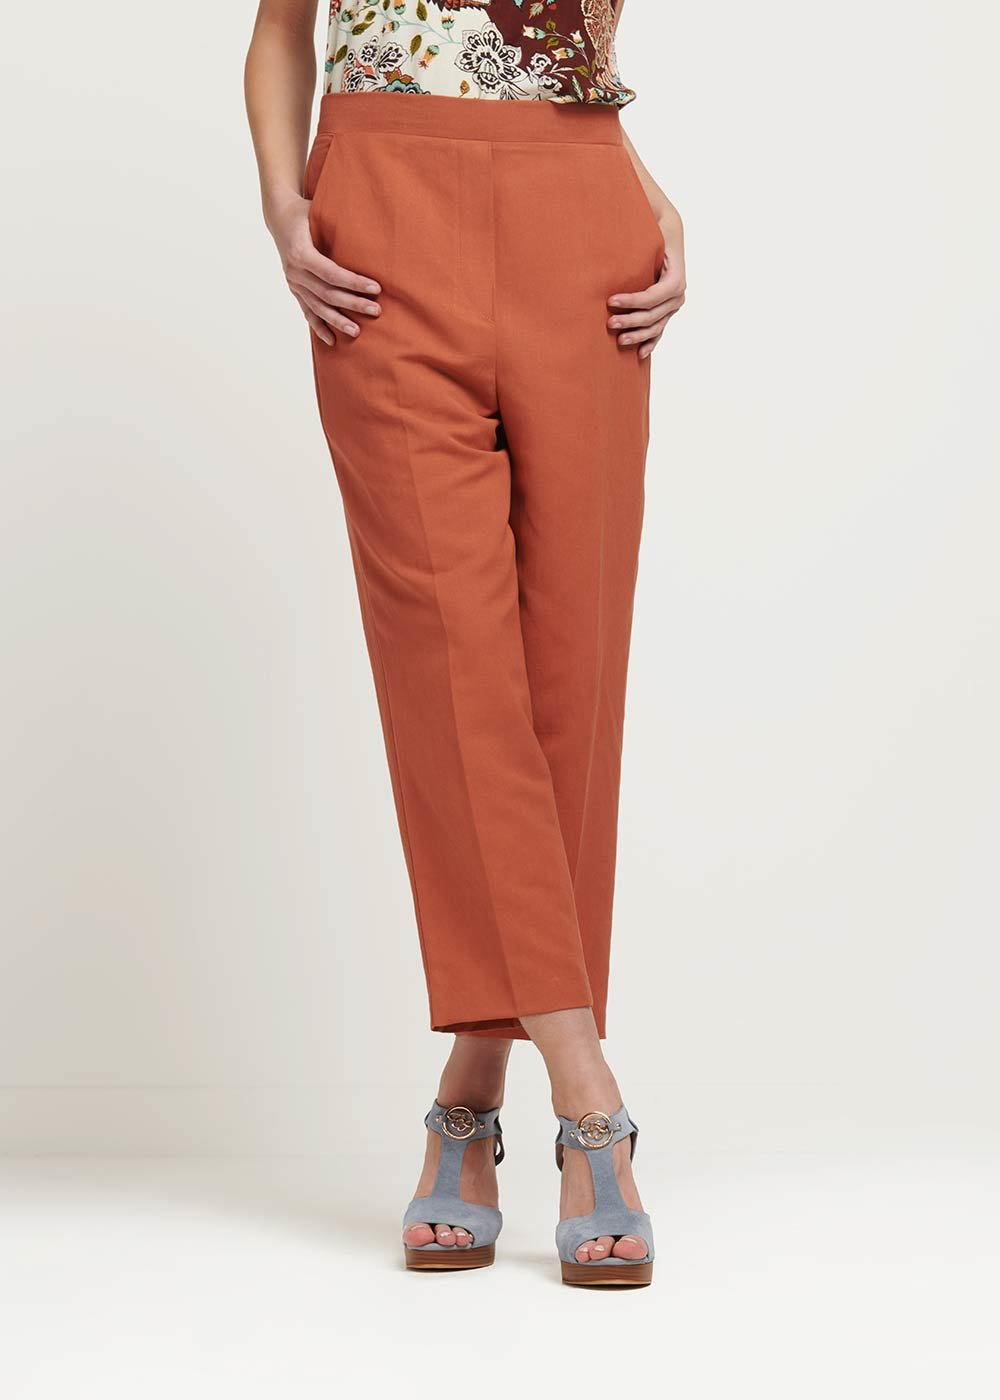 Megan cinnamon trousers - Cinnamon - Woman